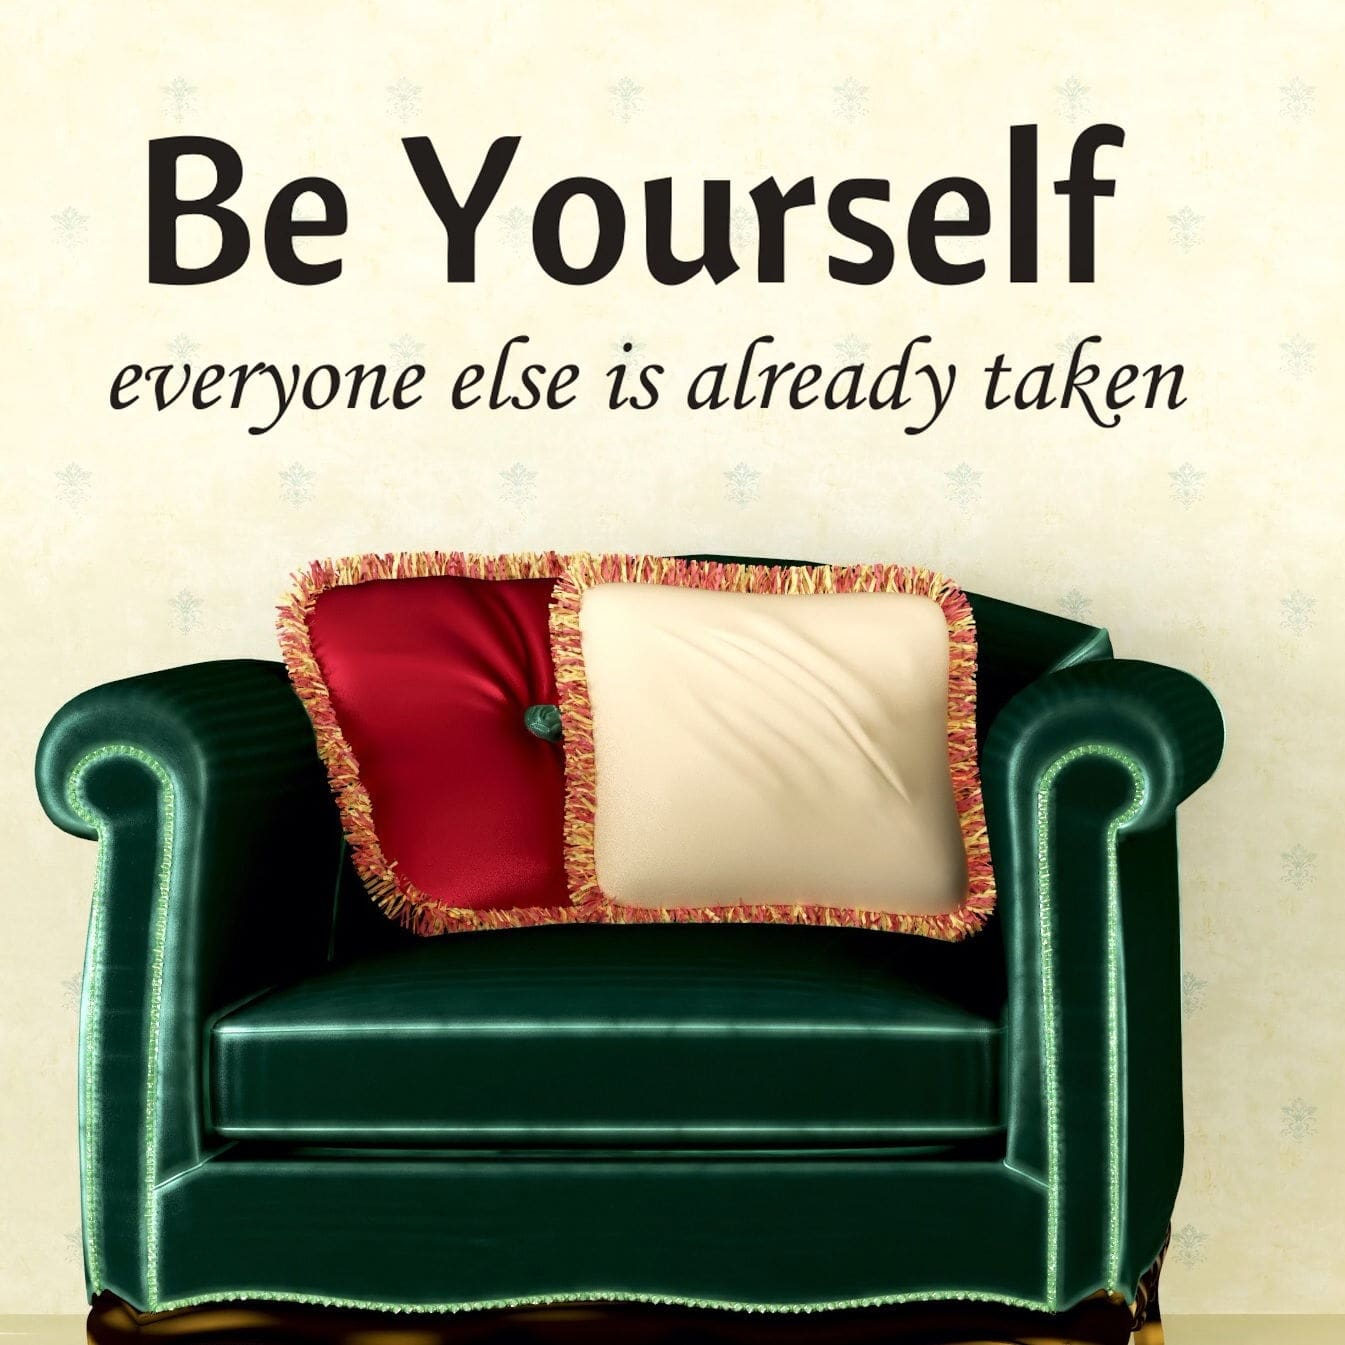 Wallsticker Be Yourself - Everyone else is taken